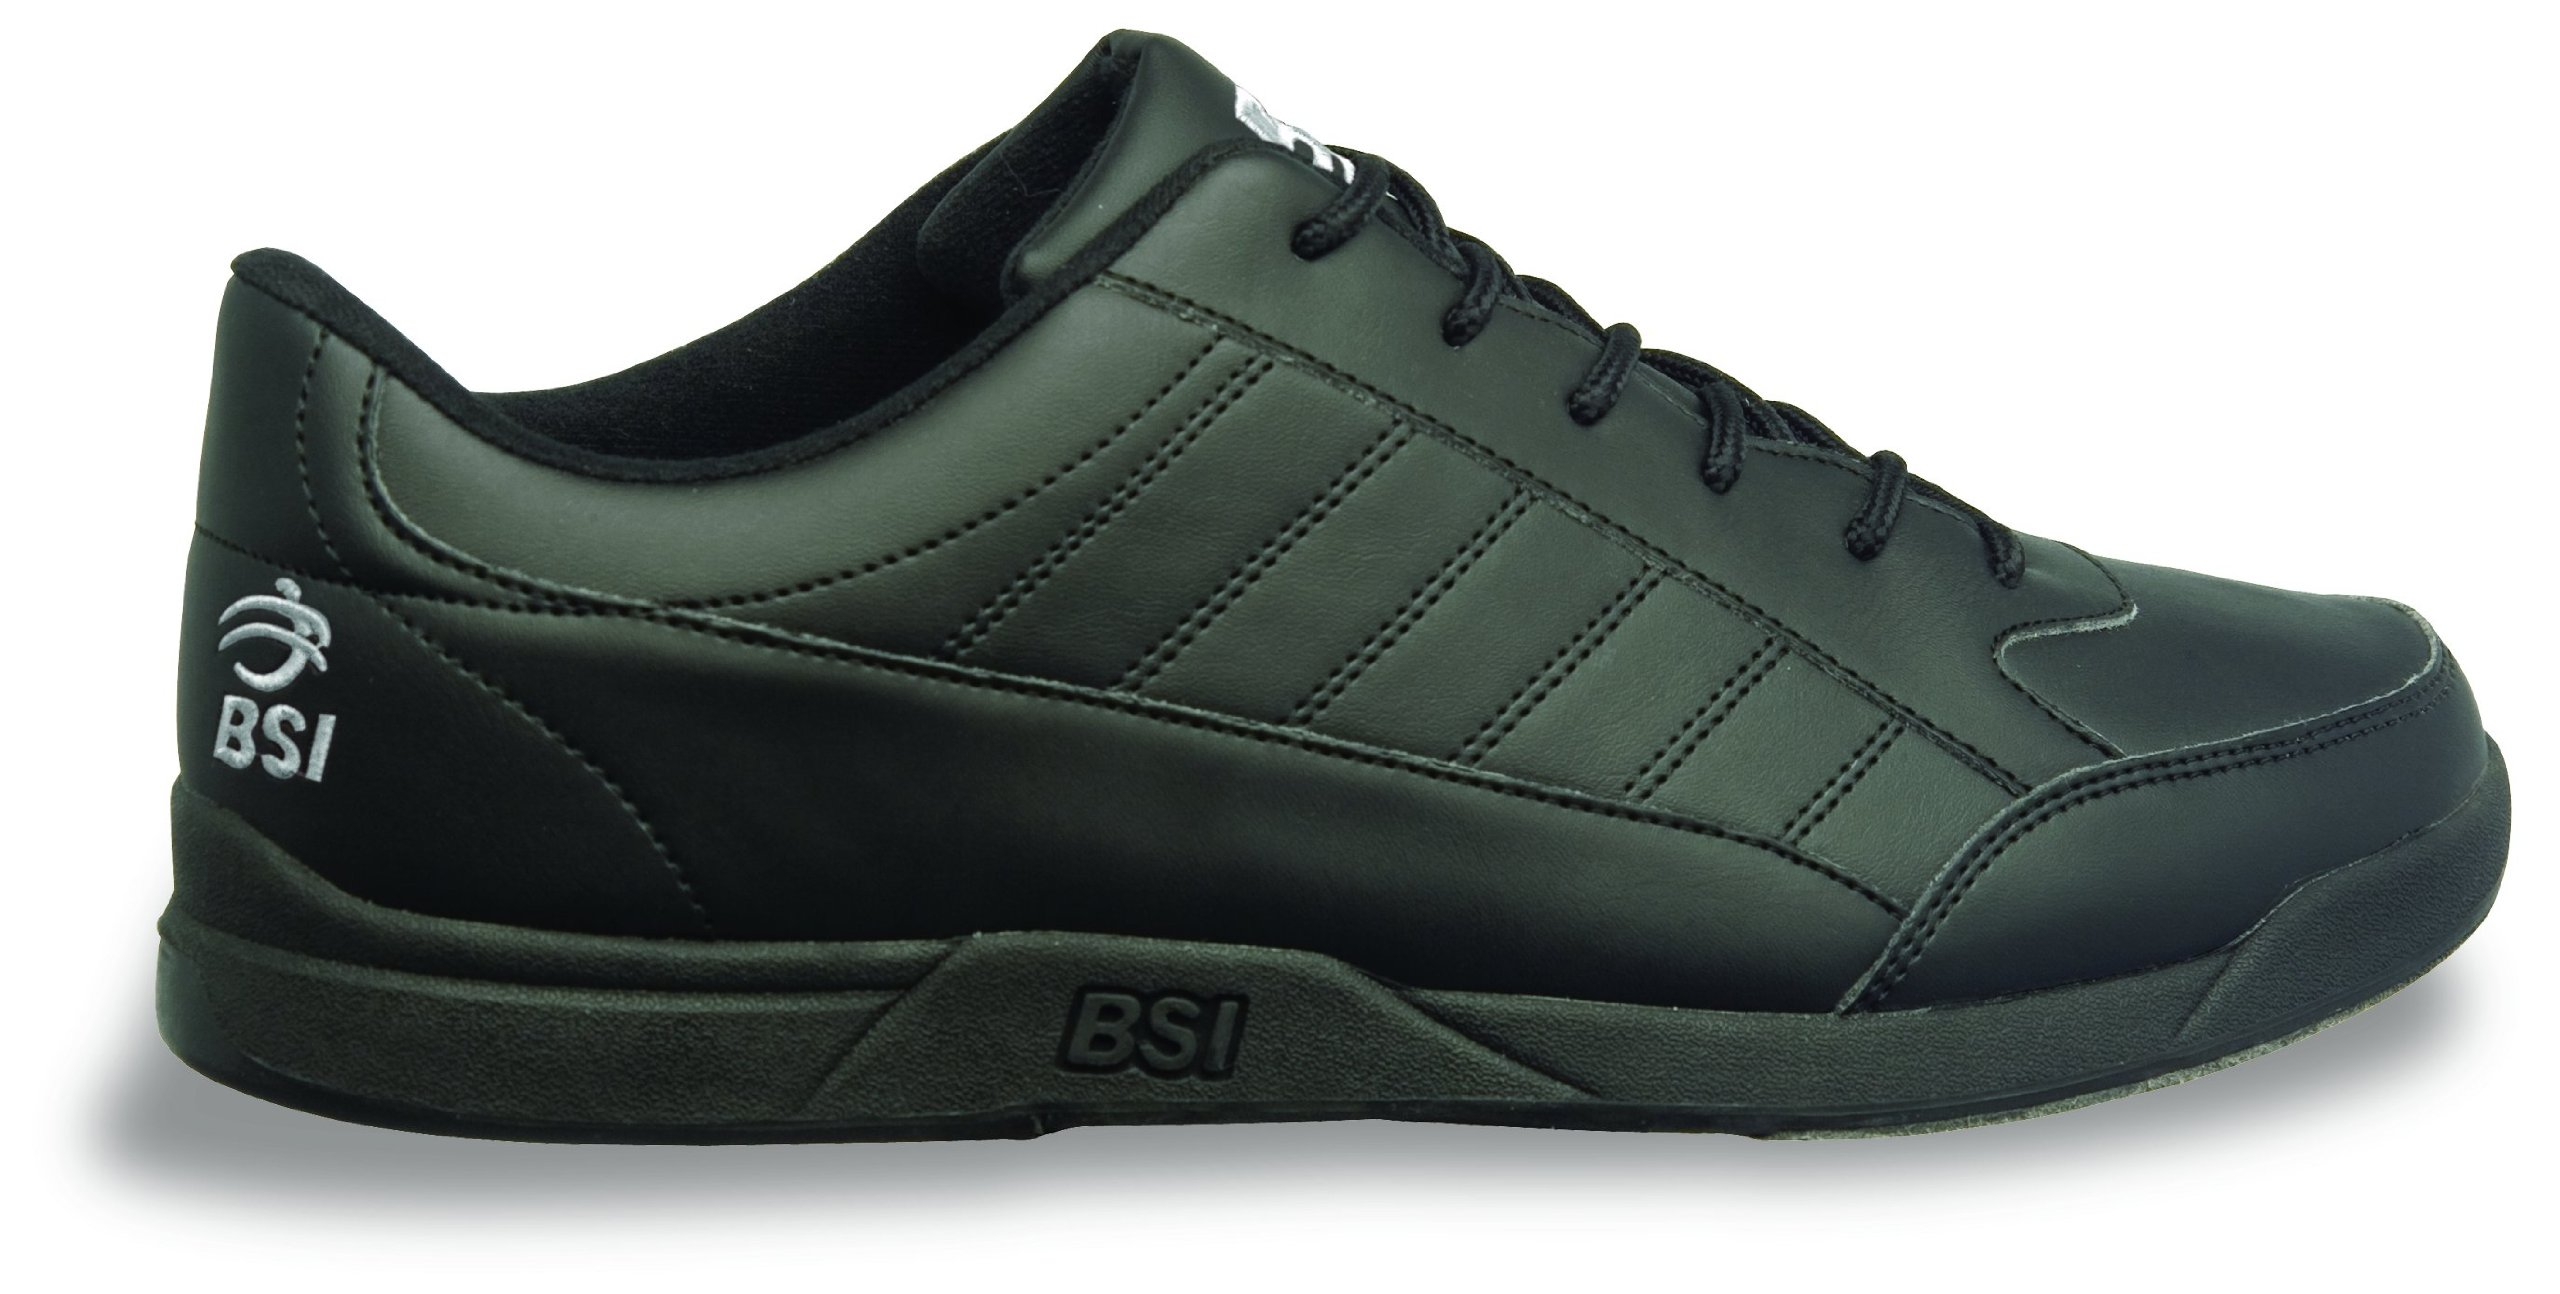 BSI Men's Basic #521 Bowling Shoes, Black, Size 12.0 by BSI